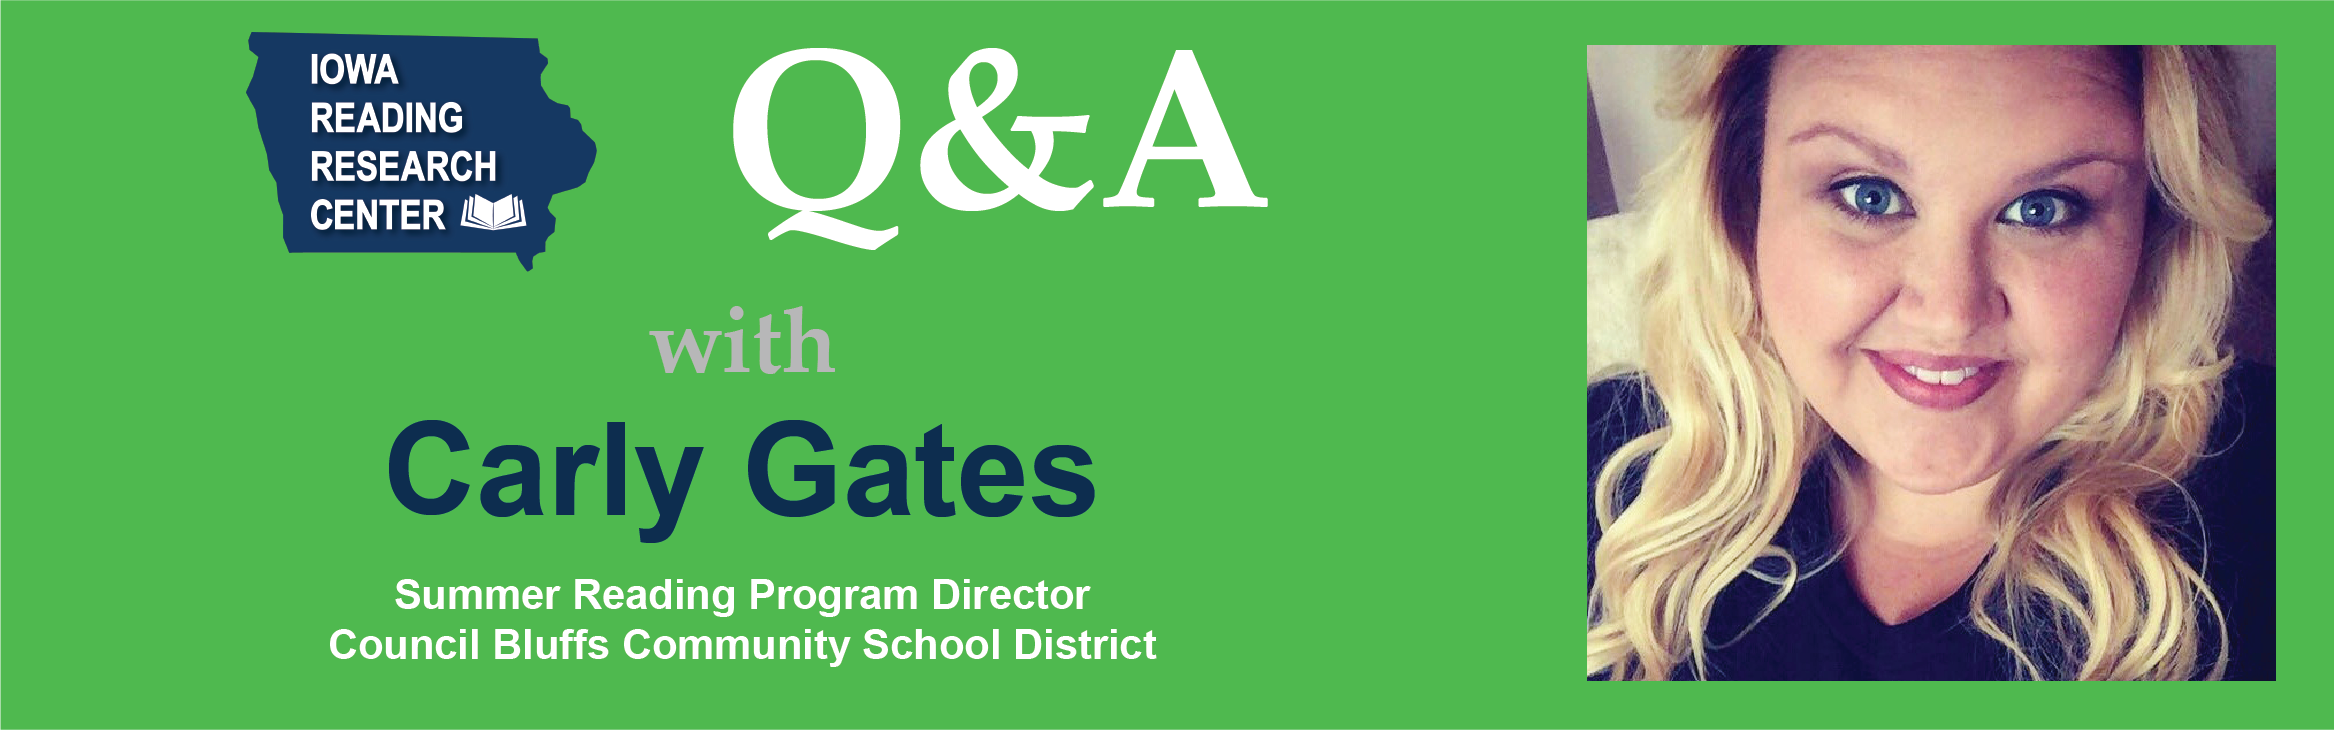 Q&A with Carly Gates